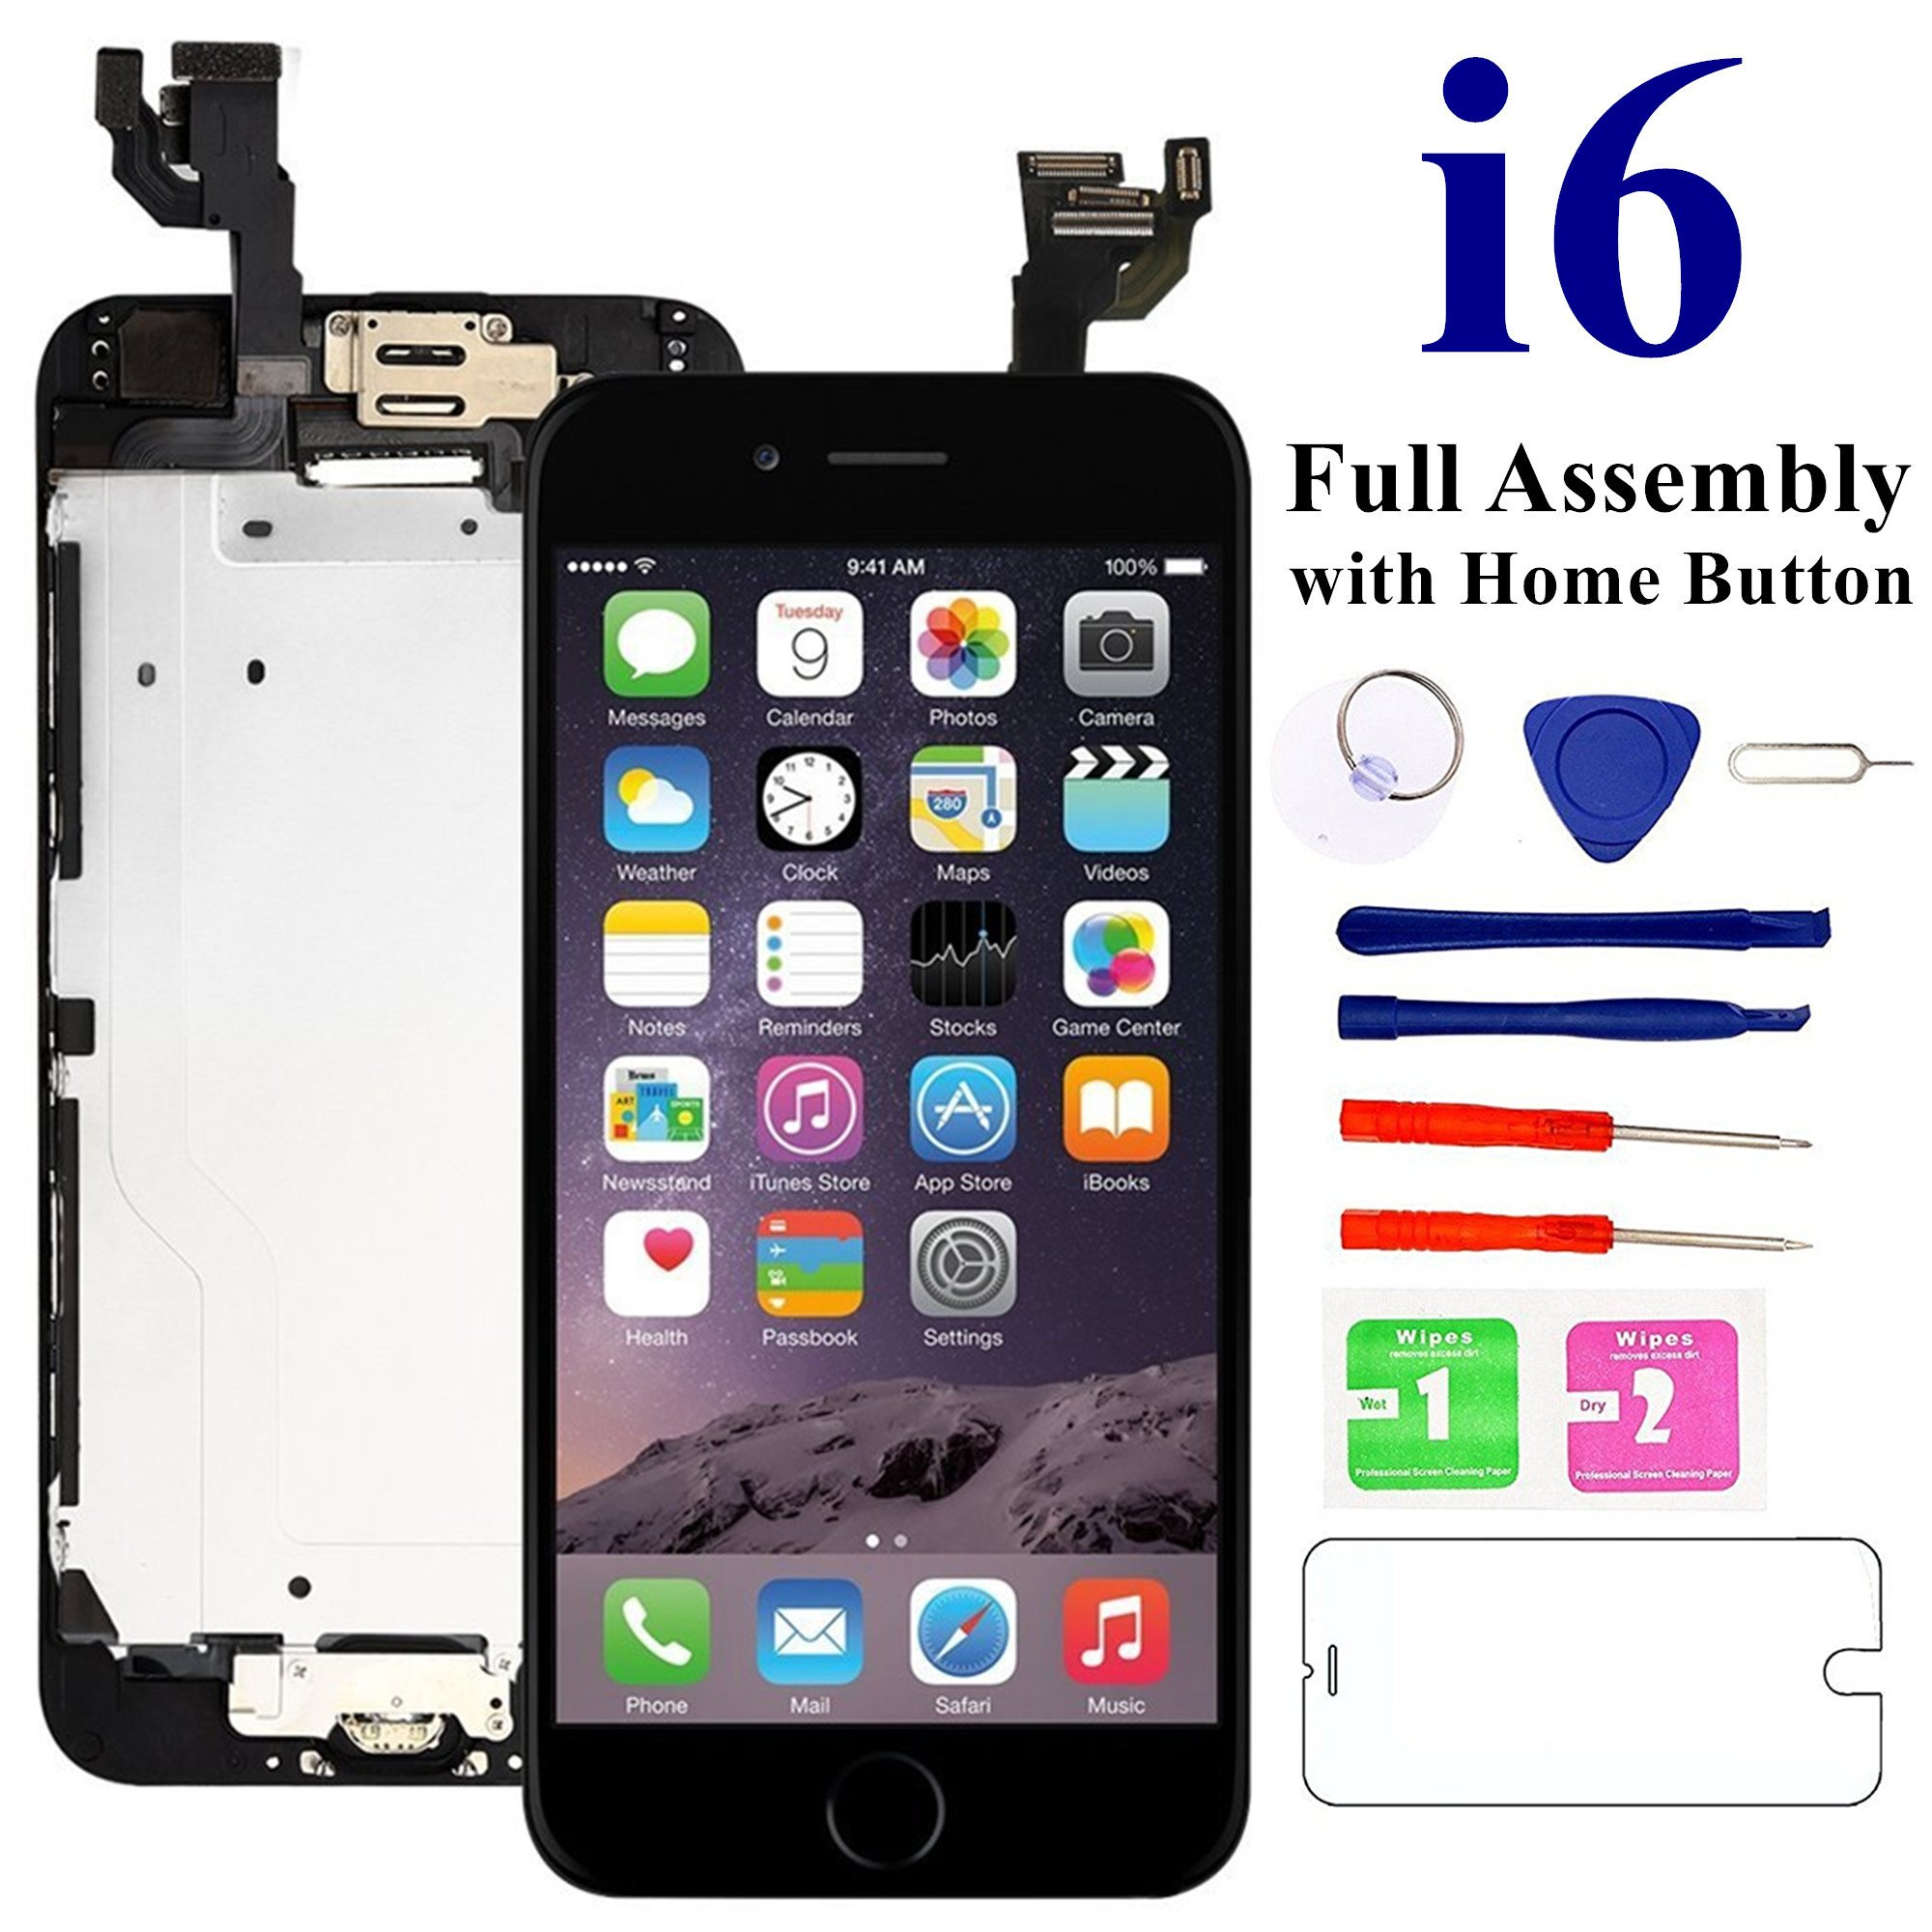 Nroech Replacement iPhone Proximity Protector